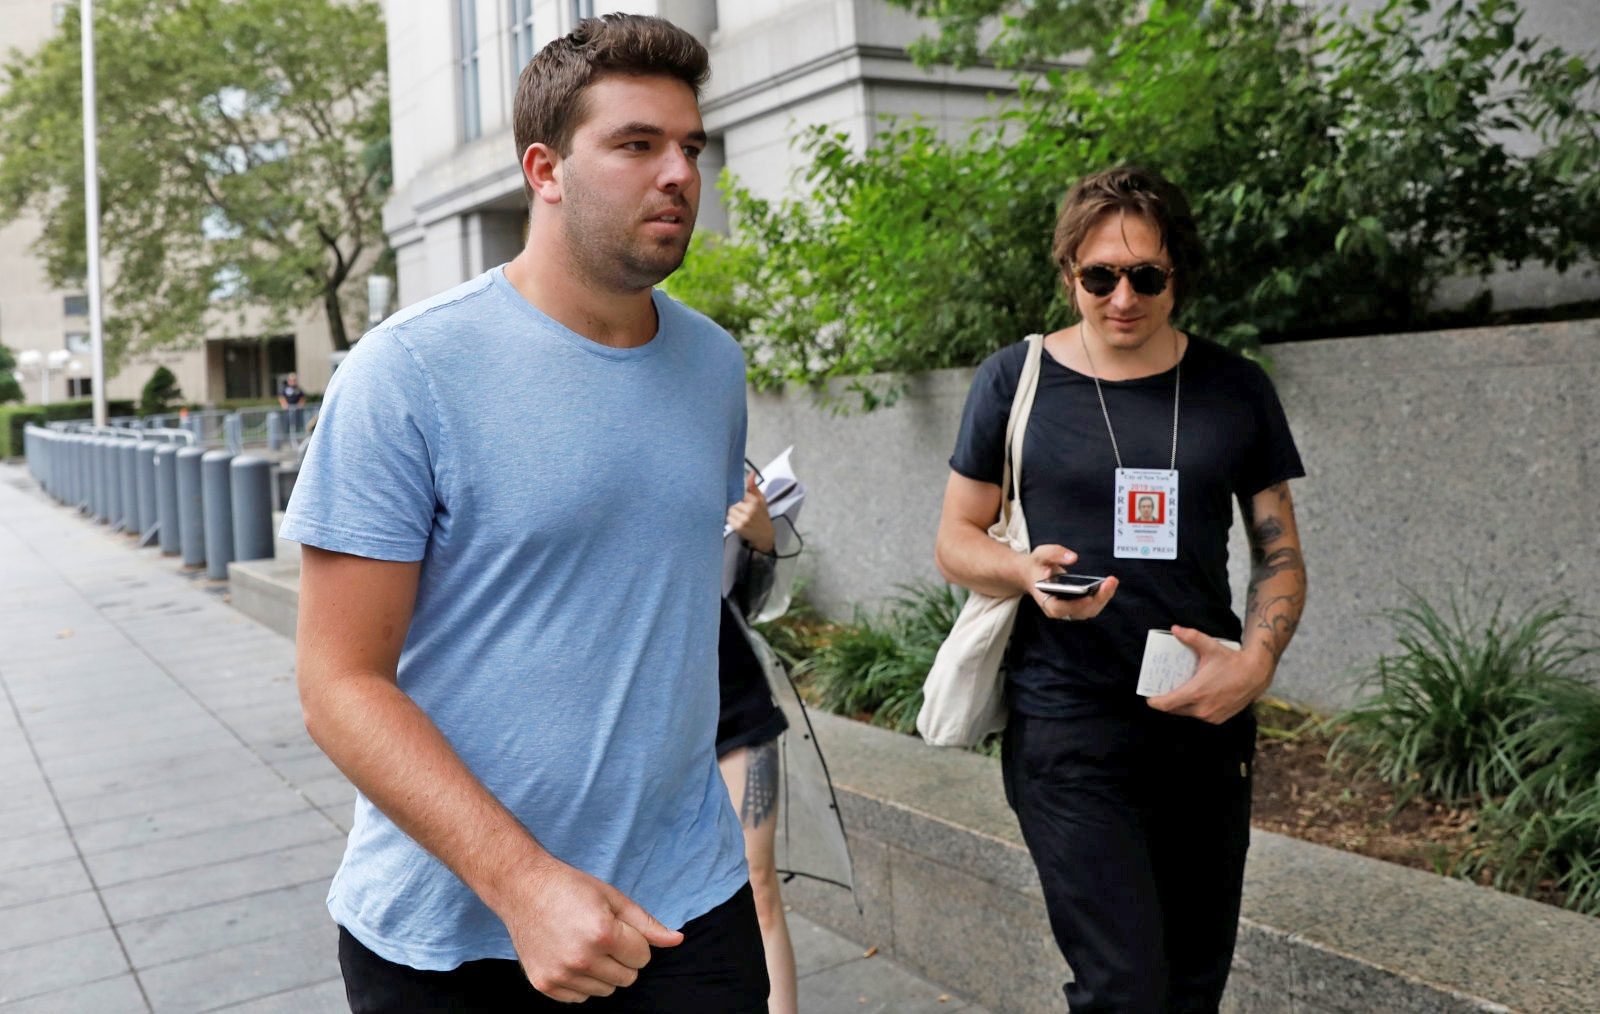 Organizer of disastrous Fyre Festival admits he misled investors | DeviceDaily.com